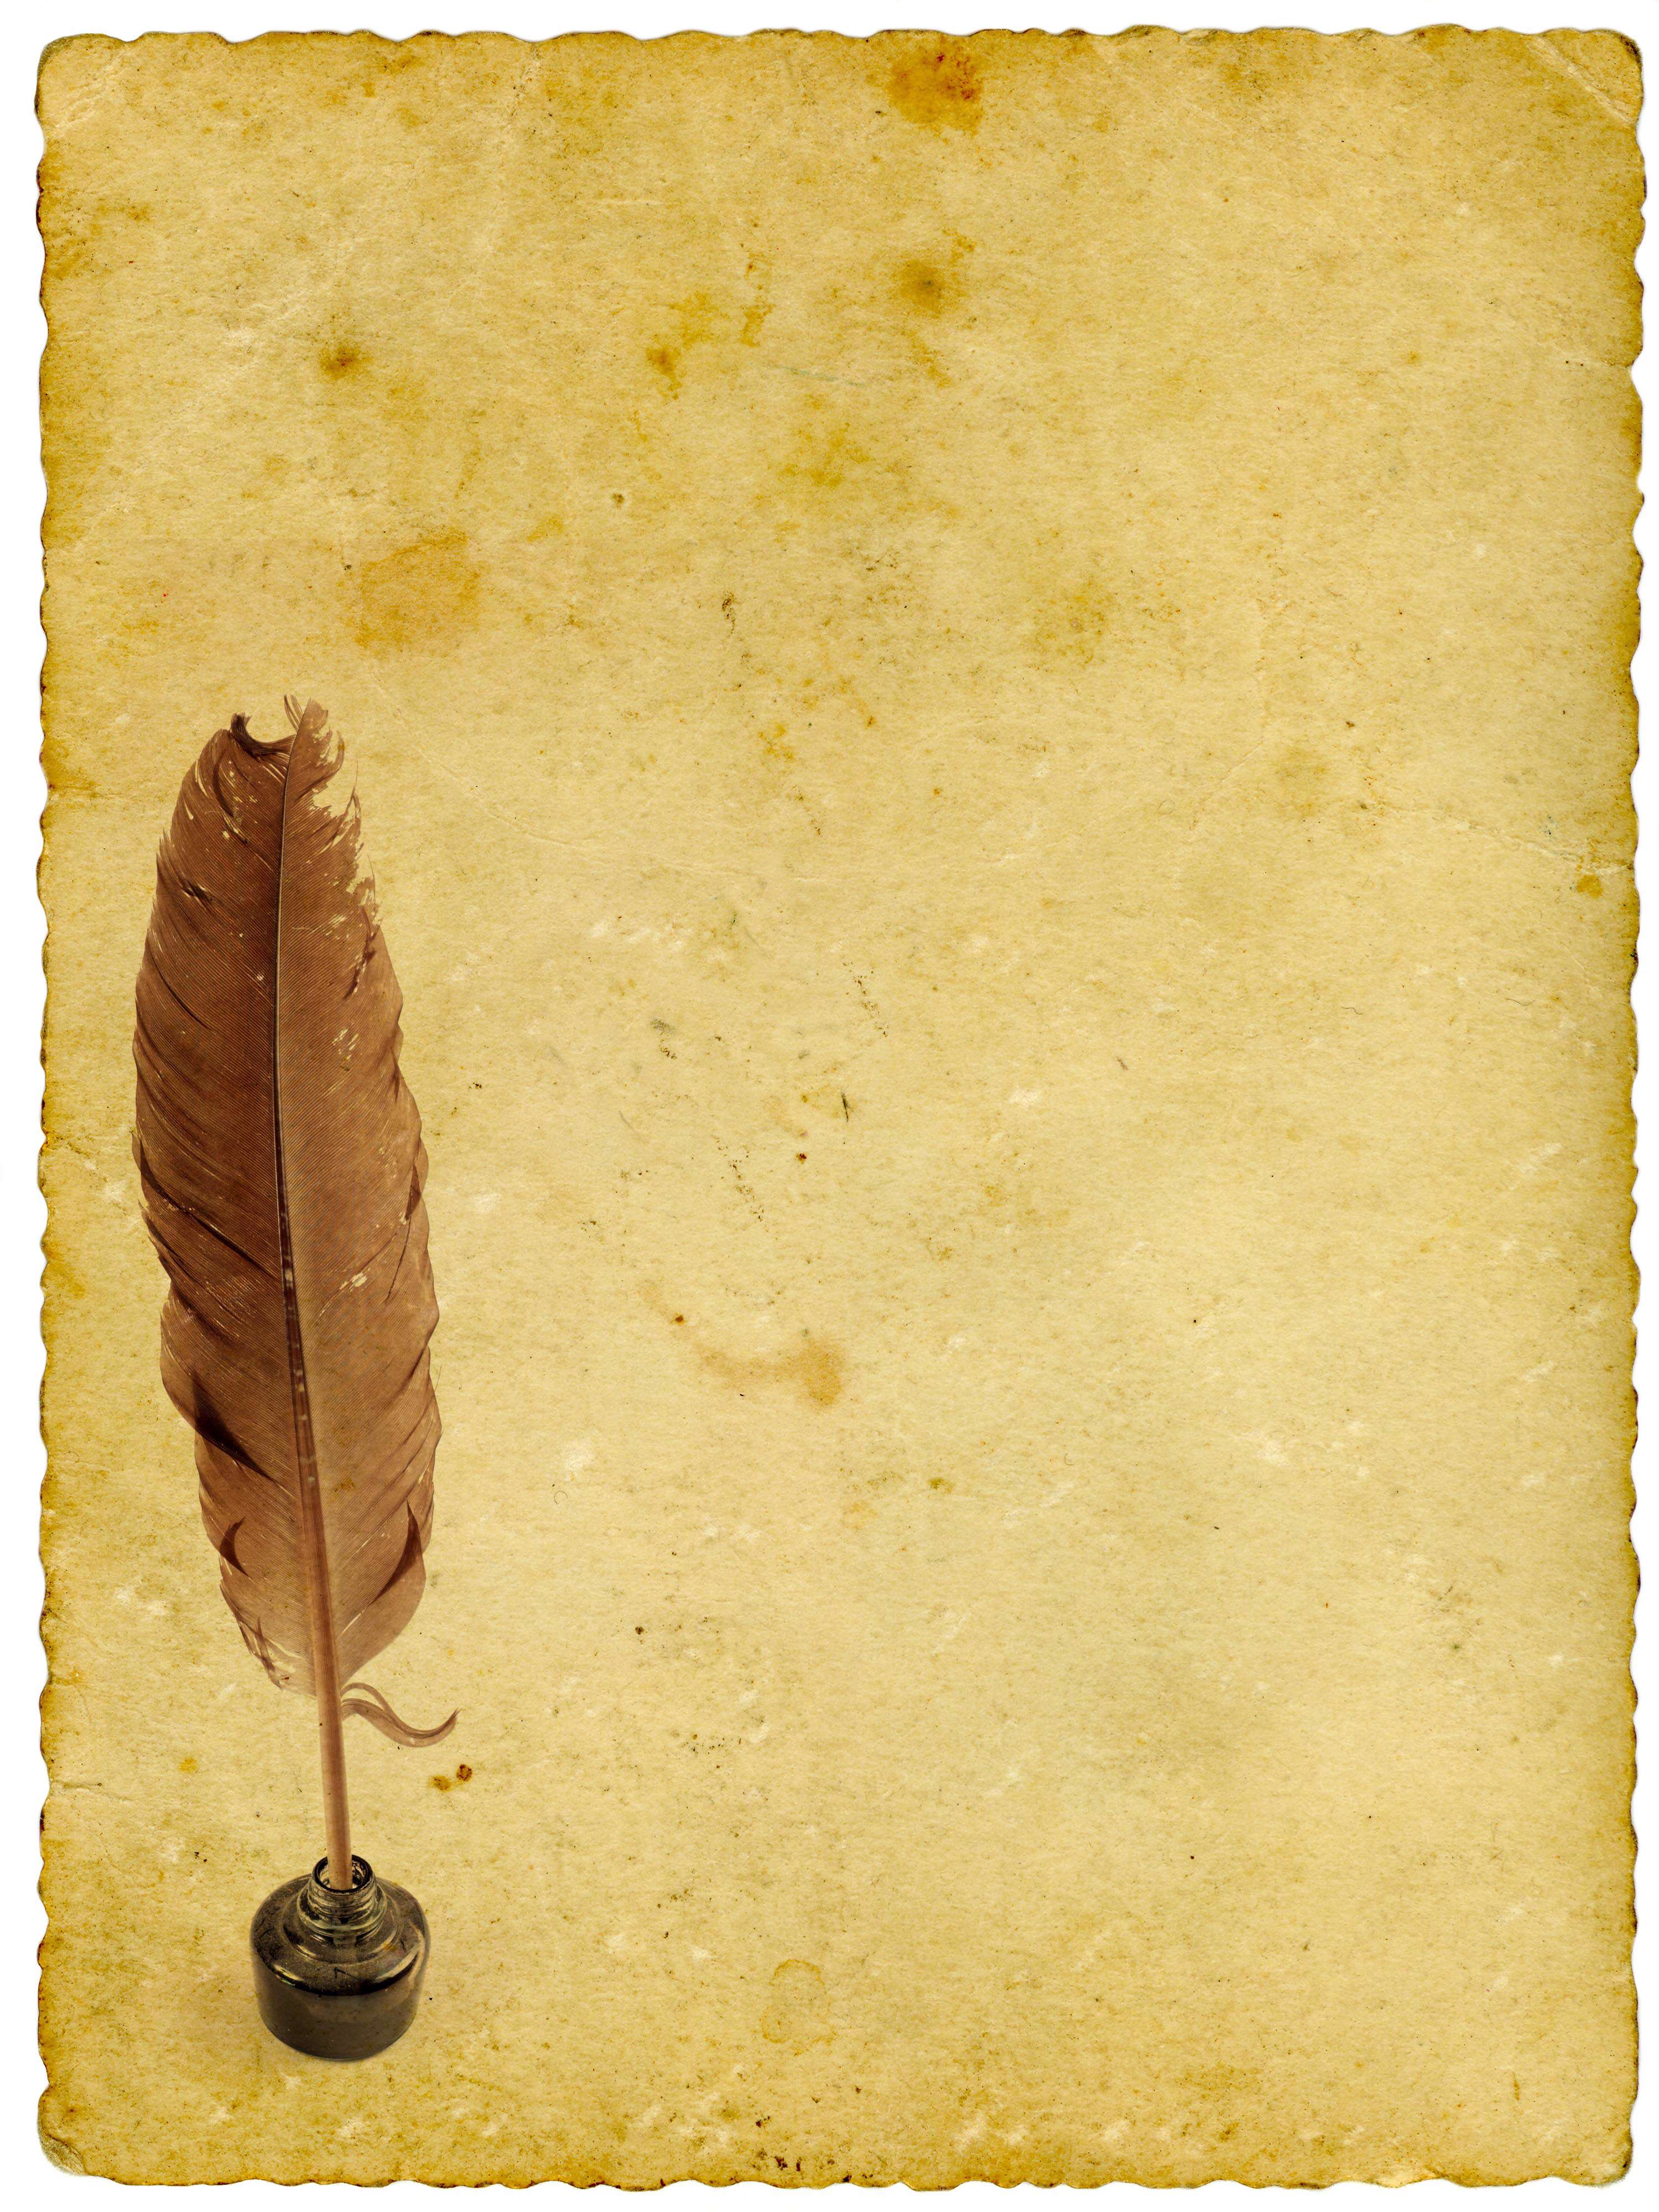 quill vintage wallpaper - photo #35